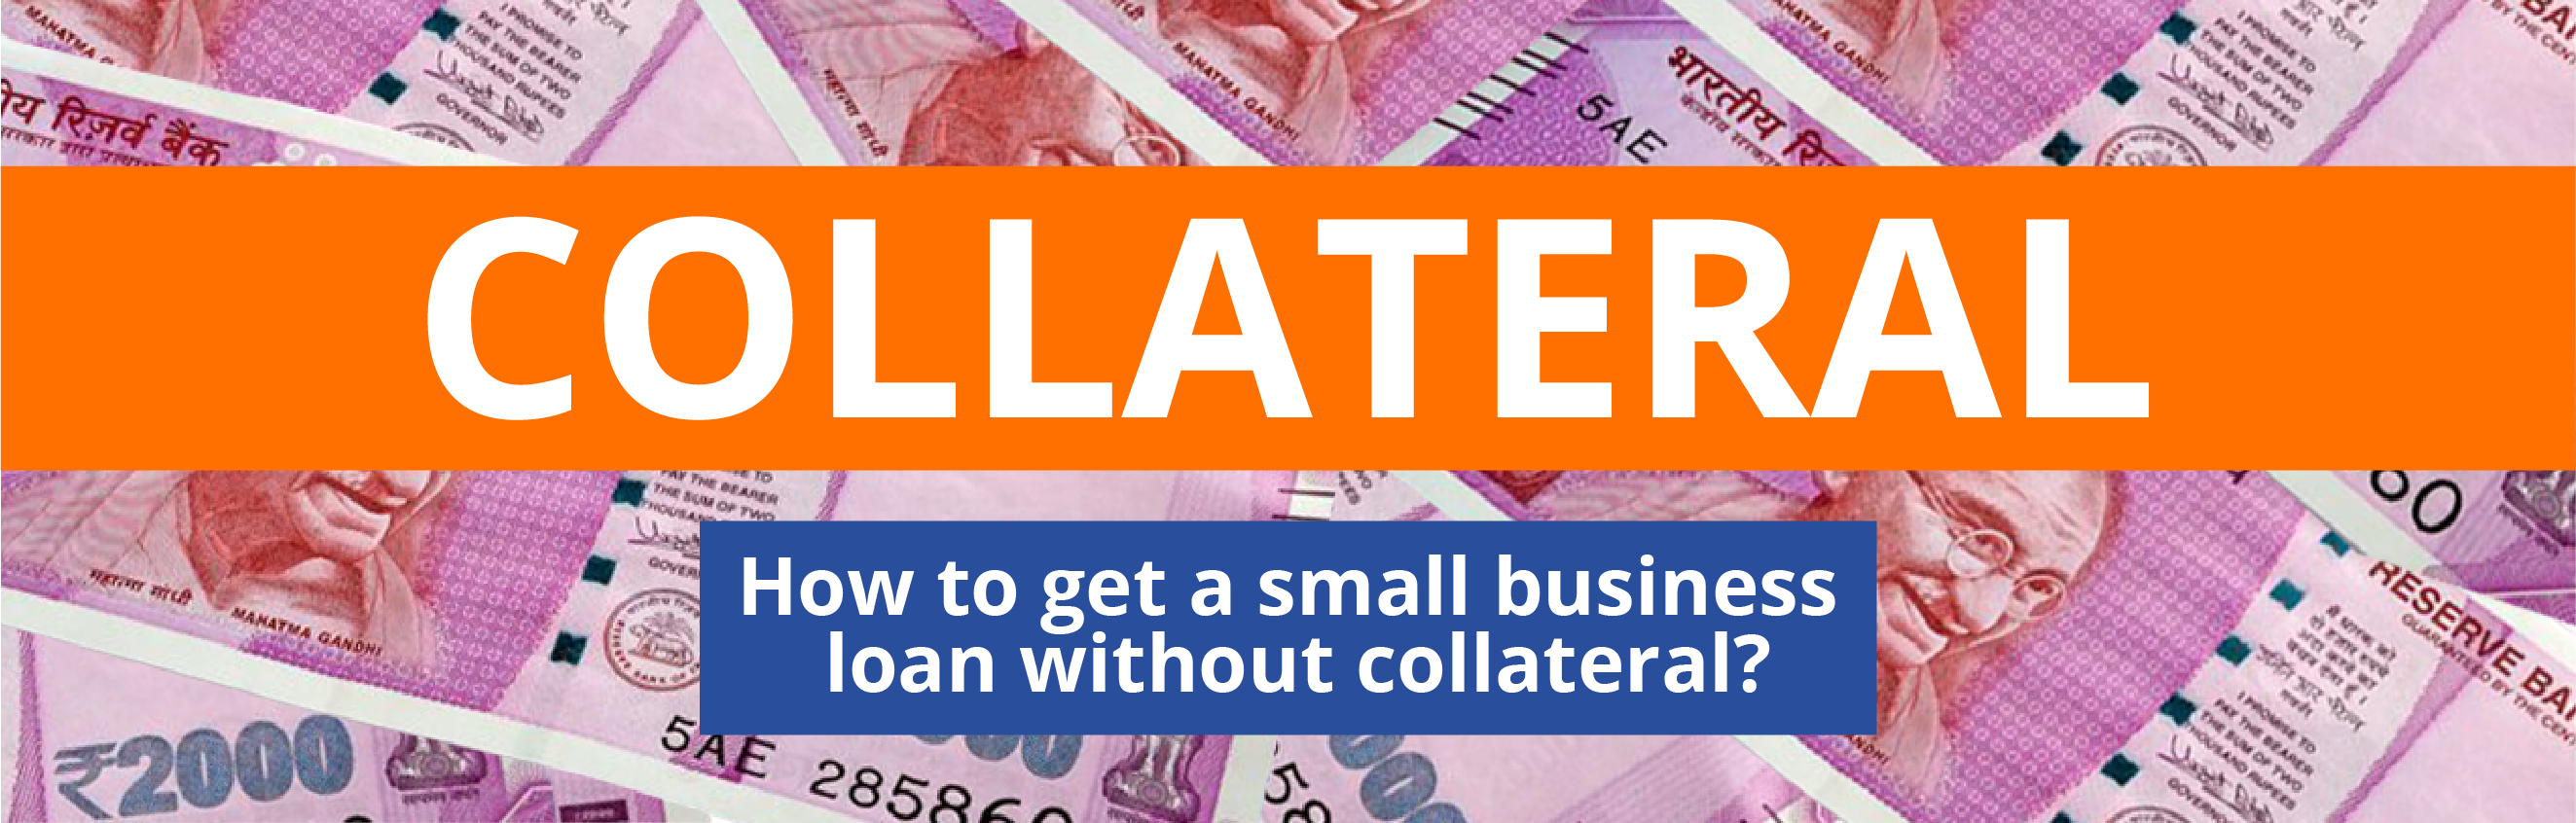 small business loan without collateral